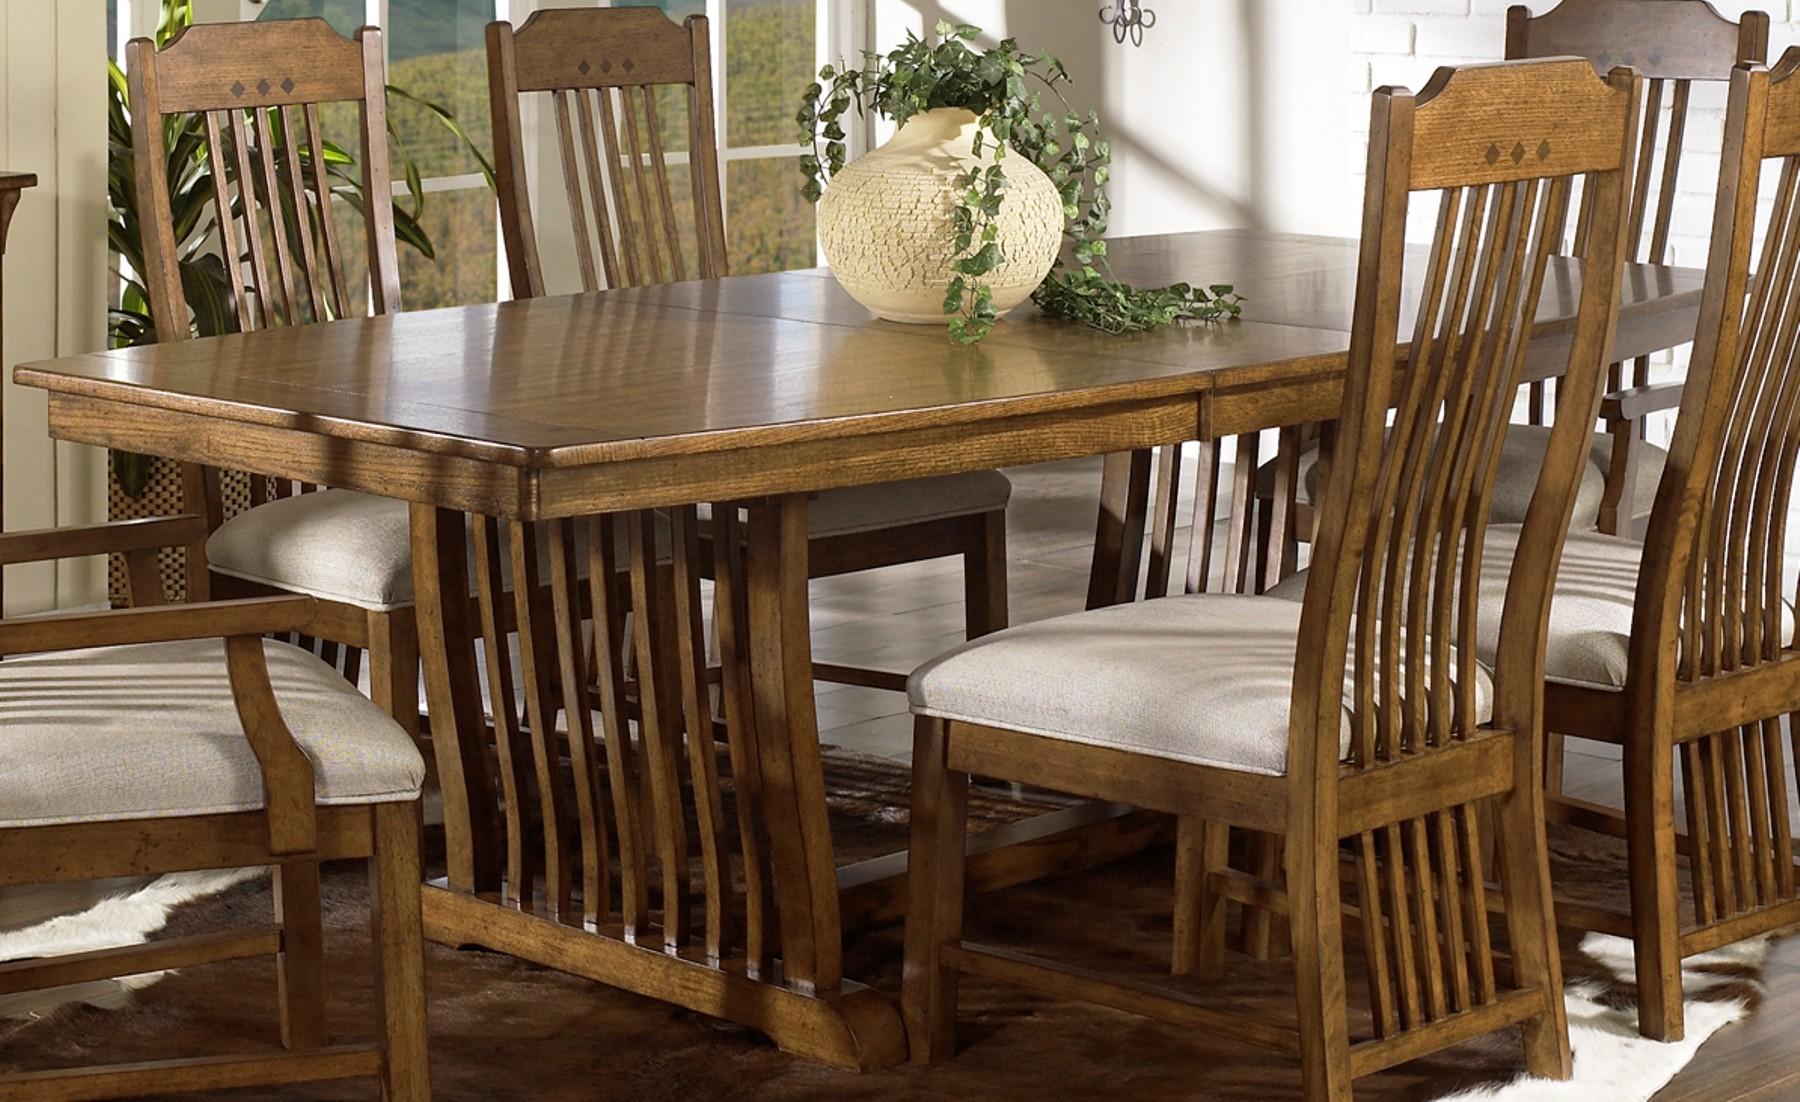 Dining Sets Style Craftsman Mission - AxSoris.